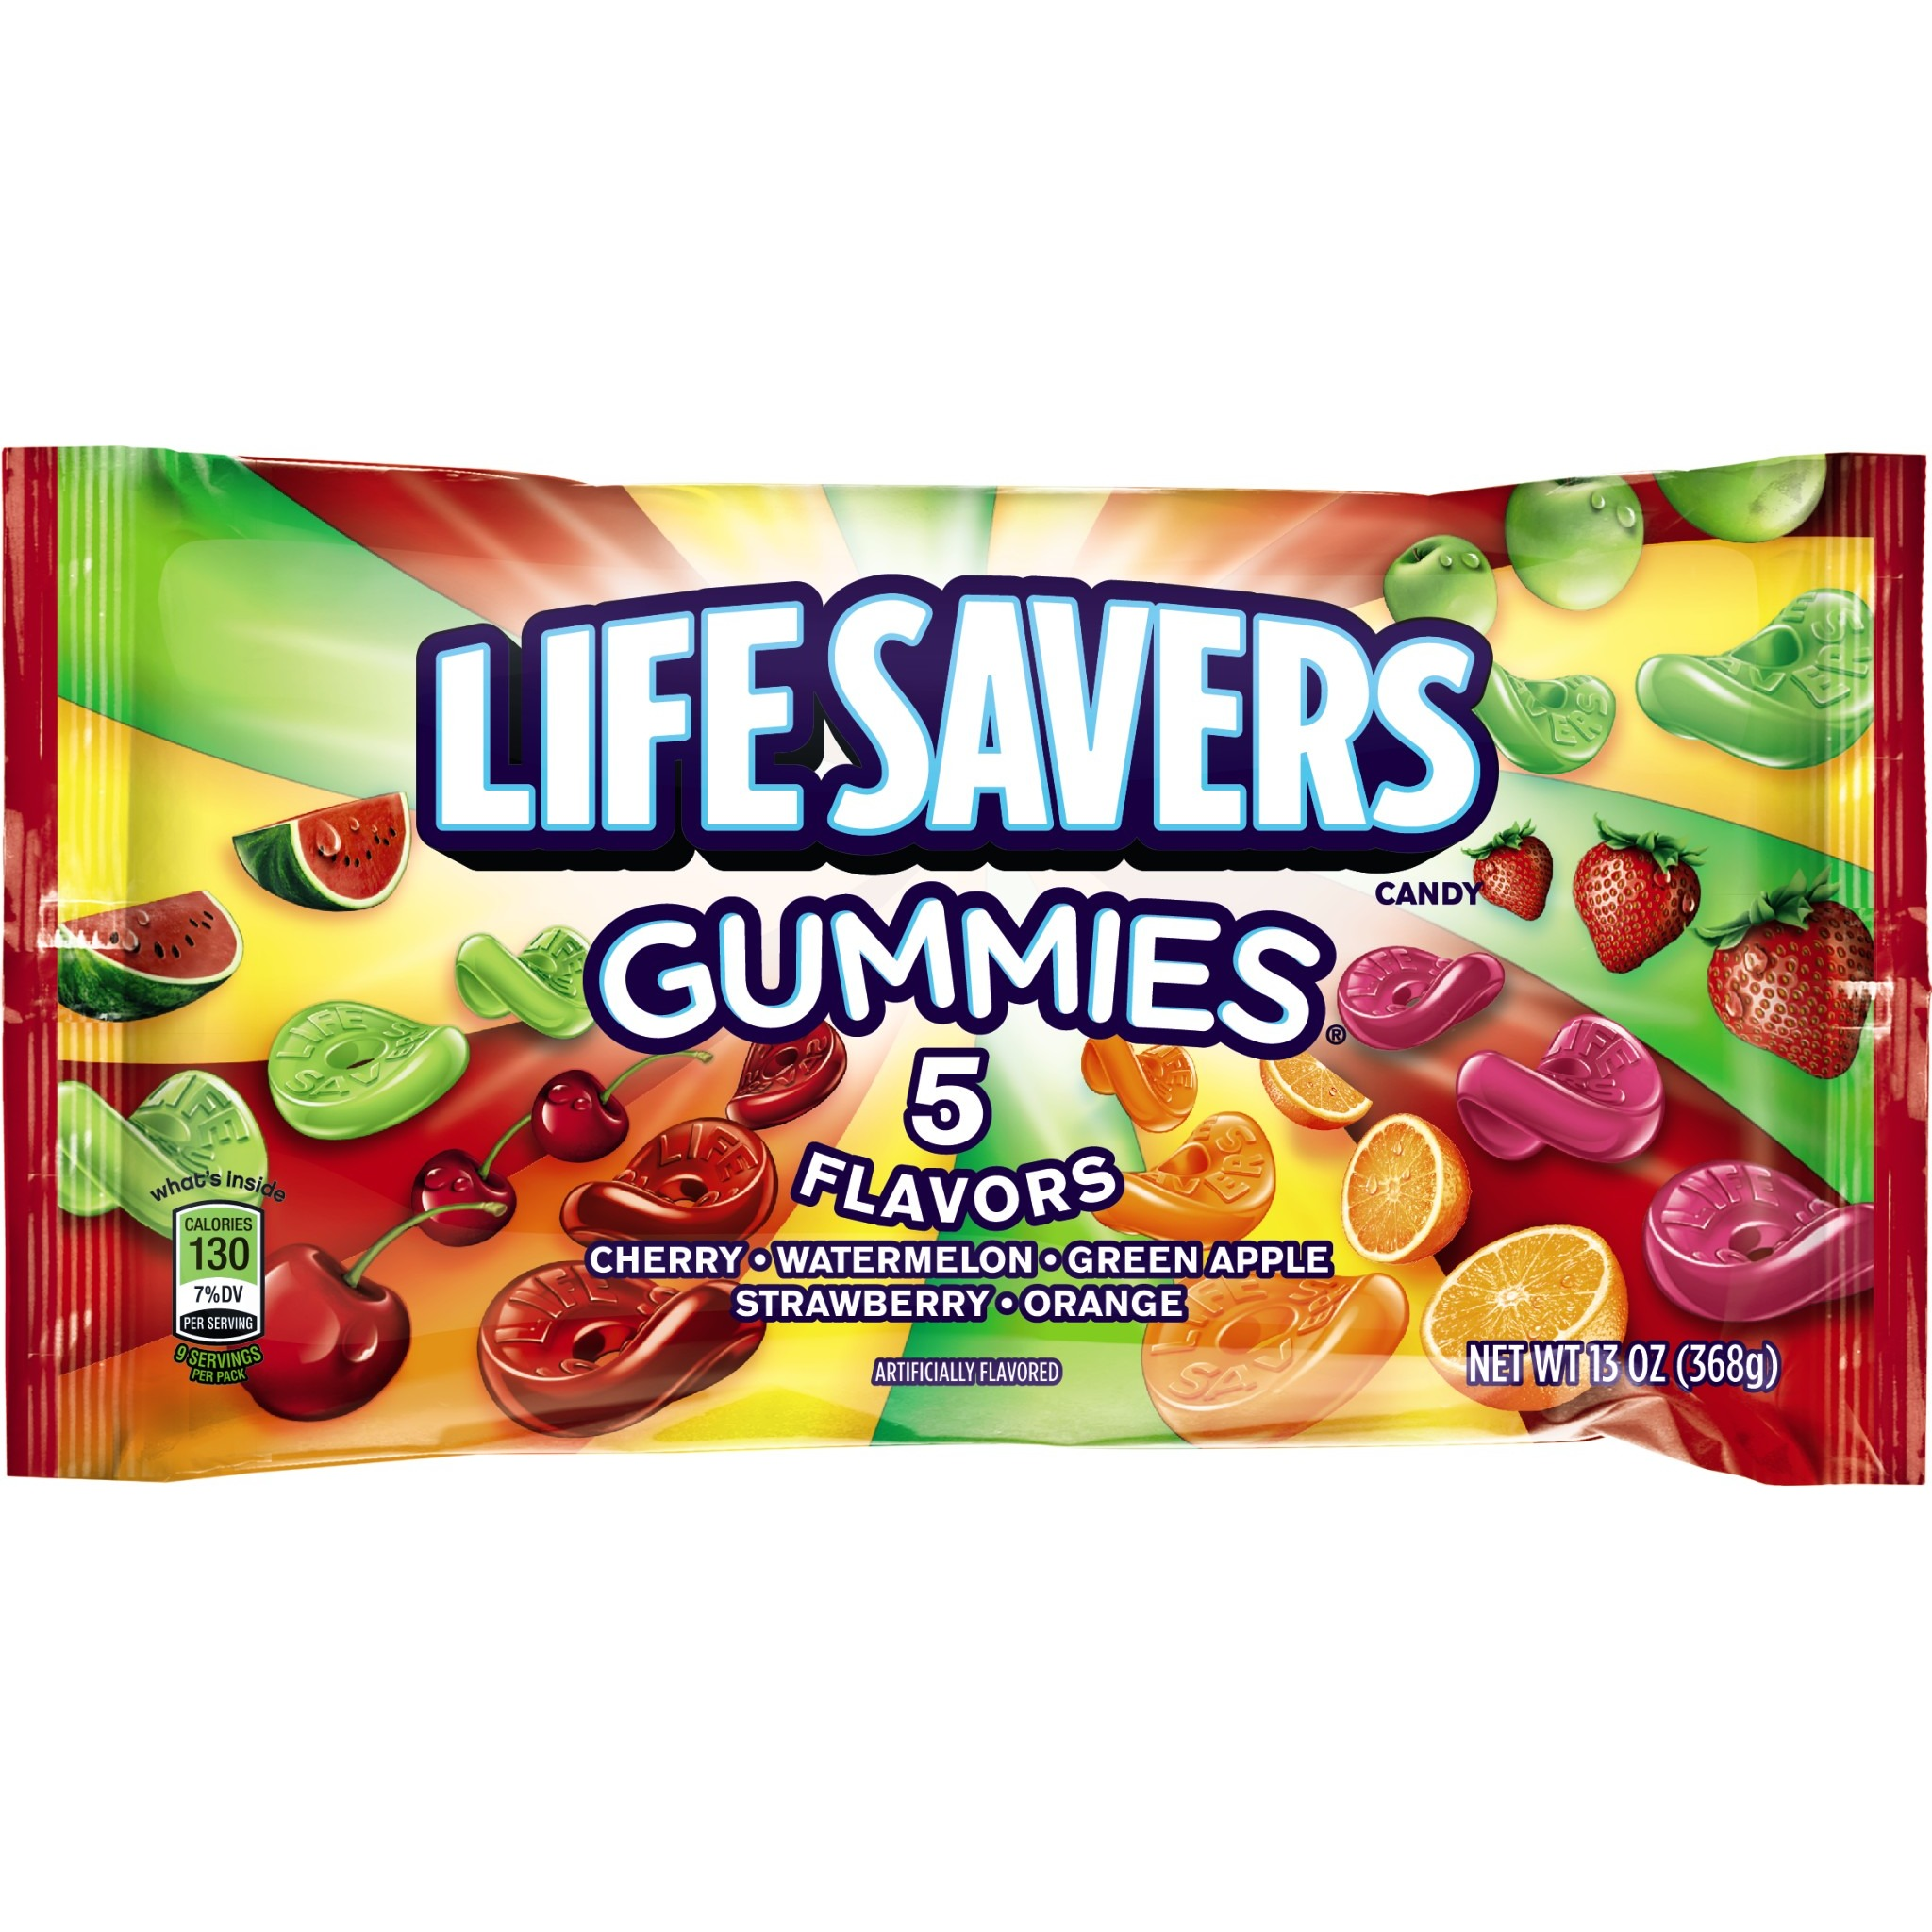 Life Savers, 5 Assorted Flavors Gummy Candy, 13 Oz